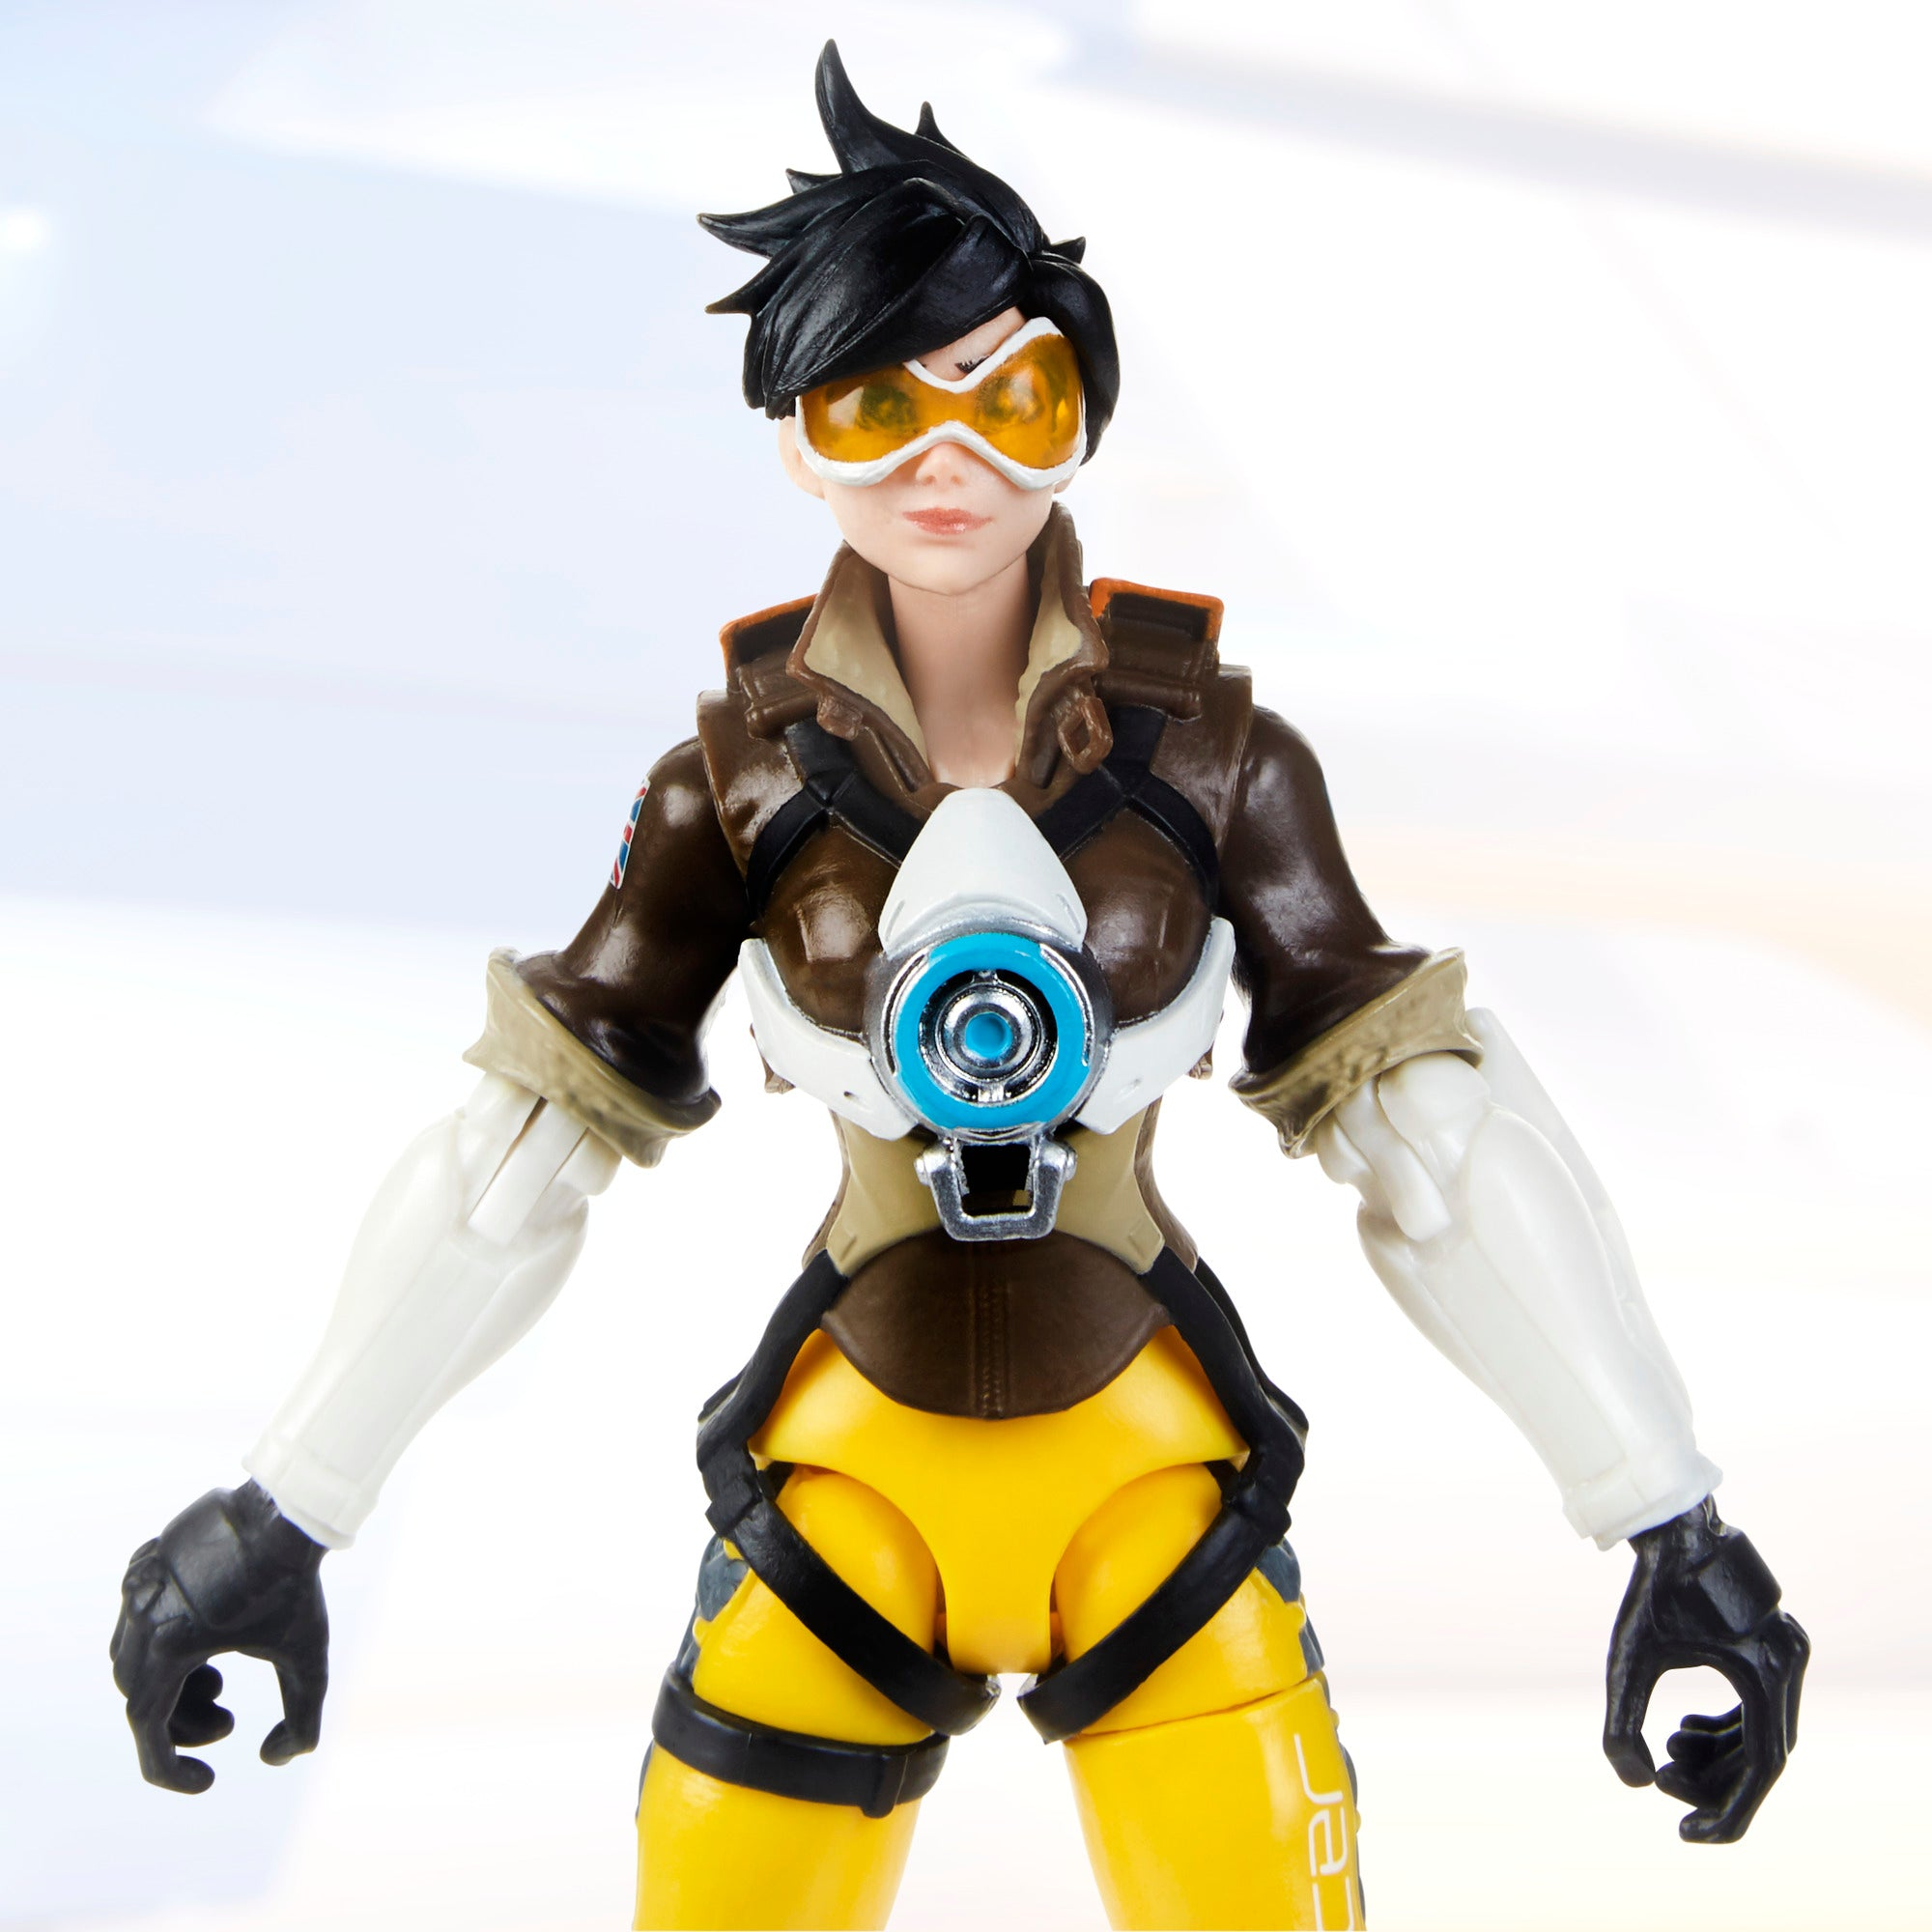 Overwatch Ultimates Series Tracer Figure Blizzard Video Game Character